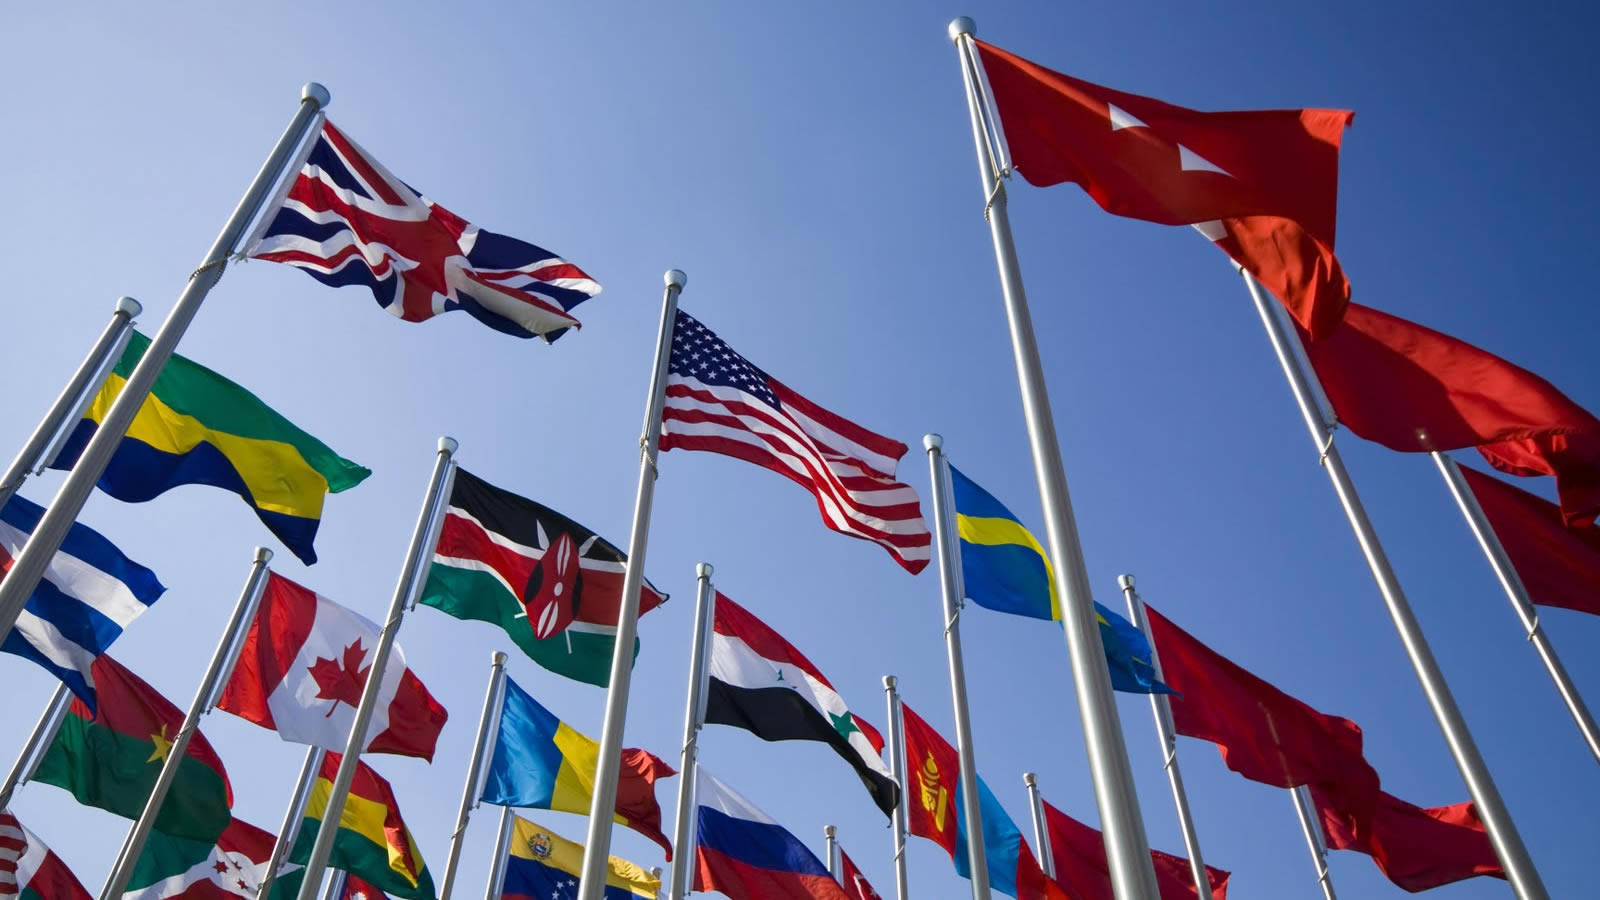 Multiple country flags